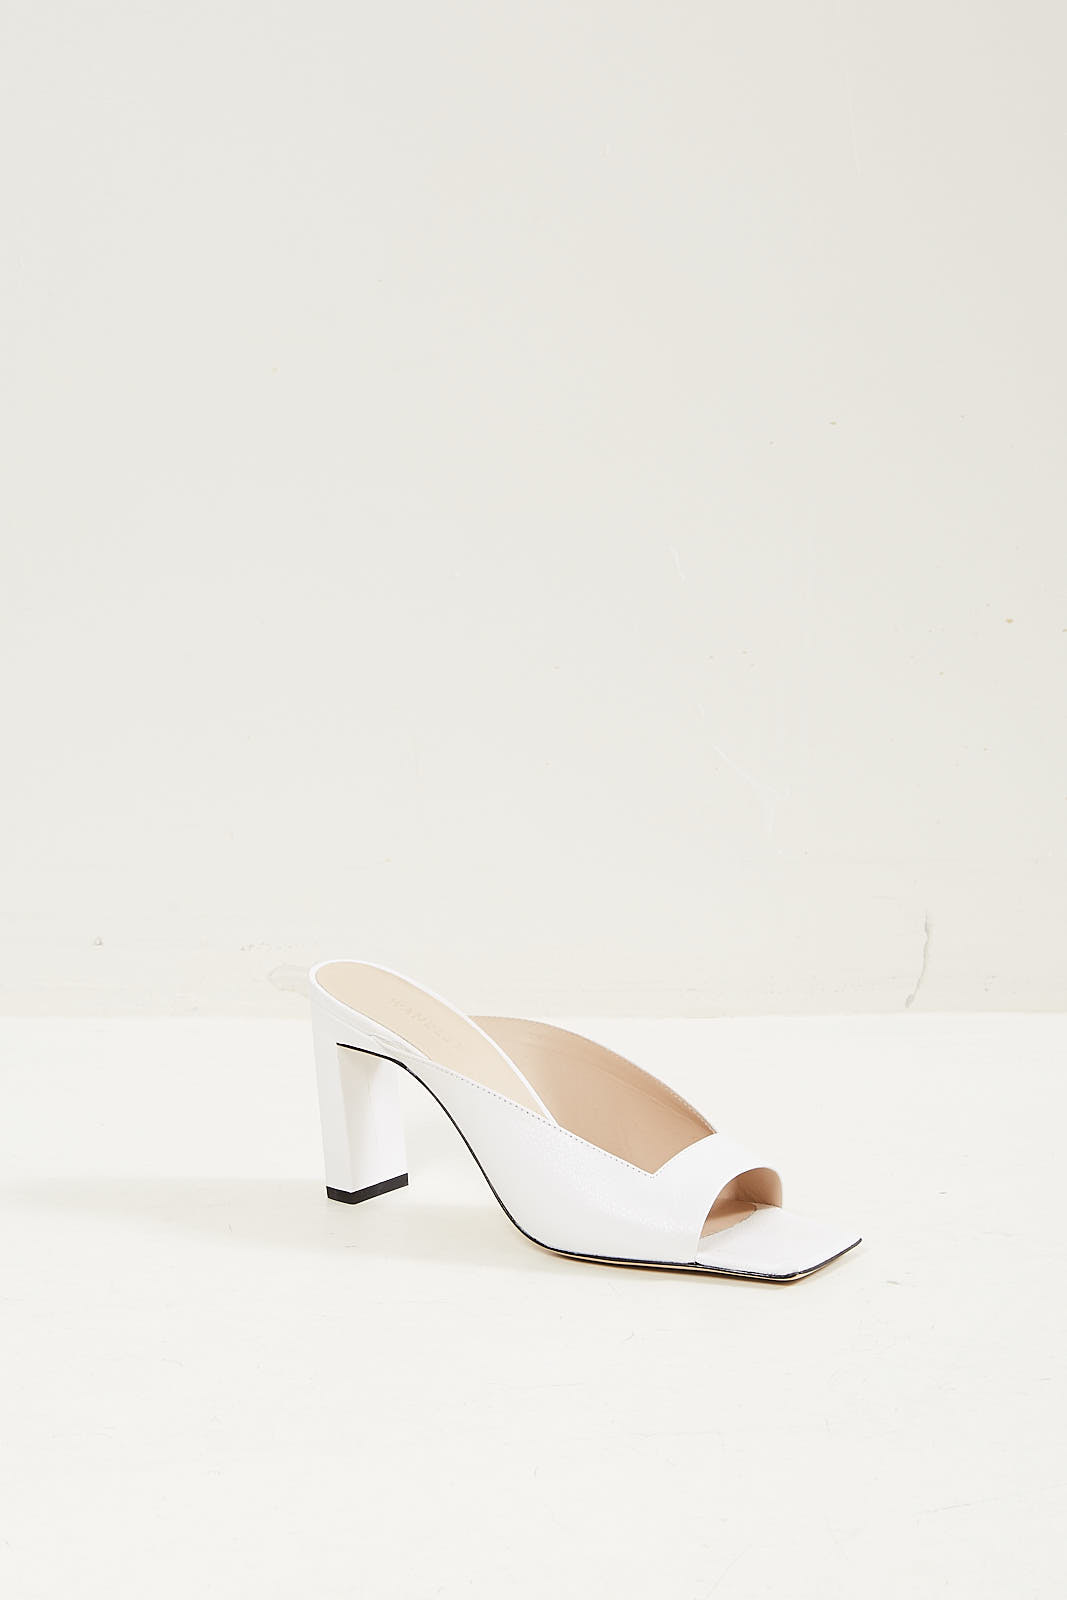 Wandler ISA SANDAL CALF LEATHER